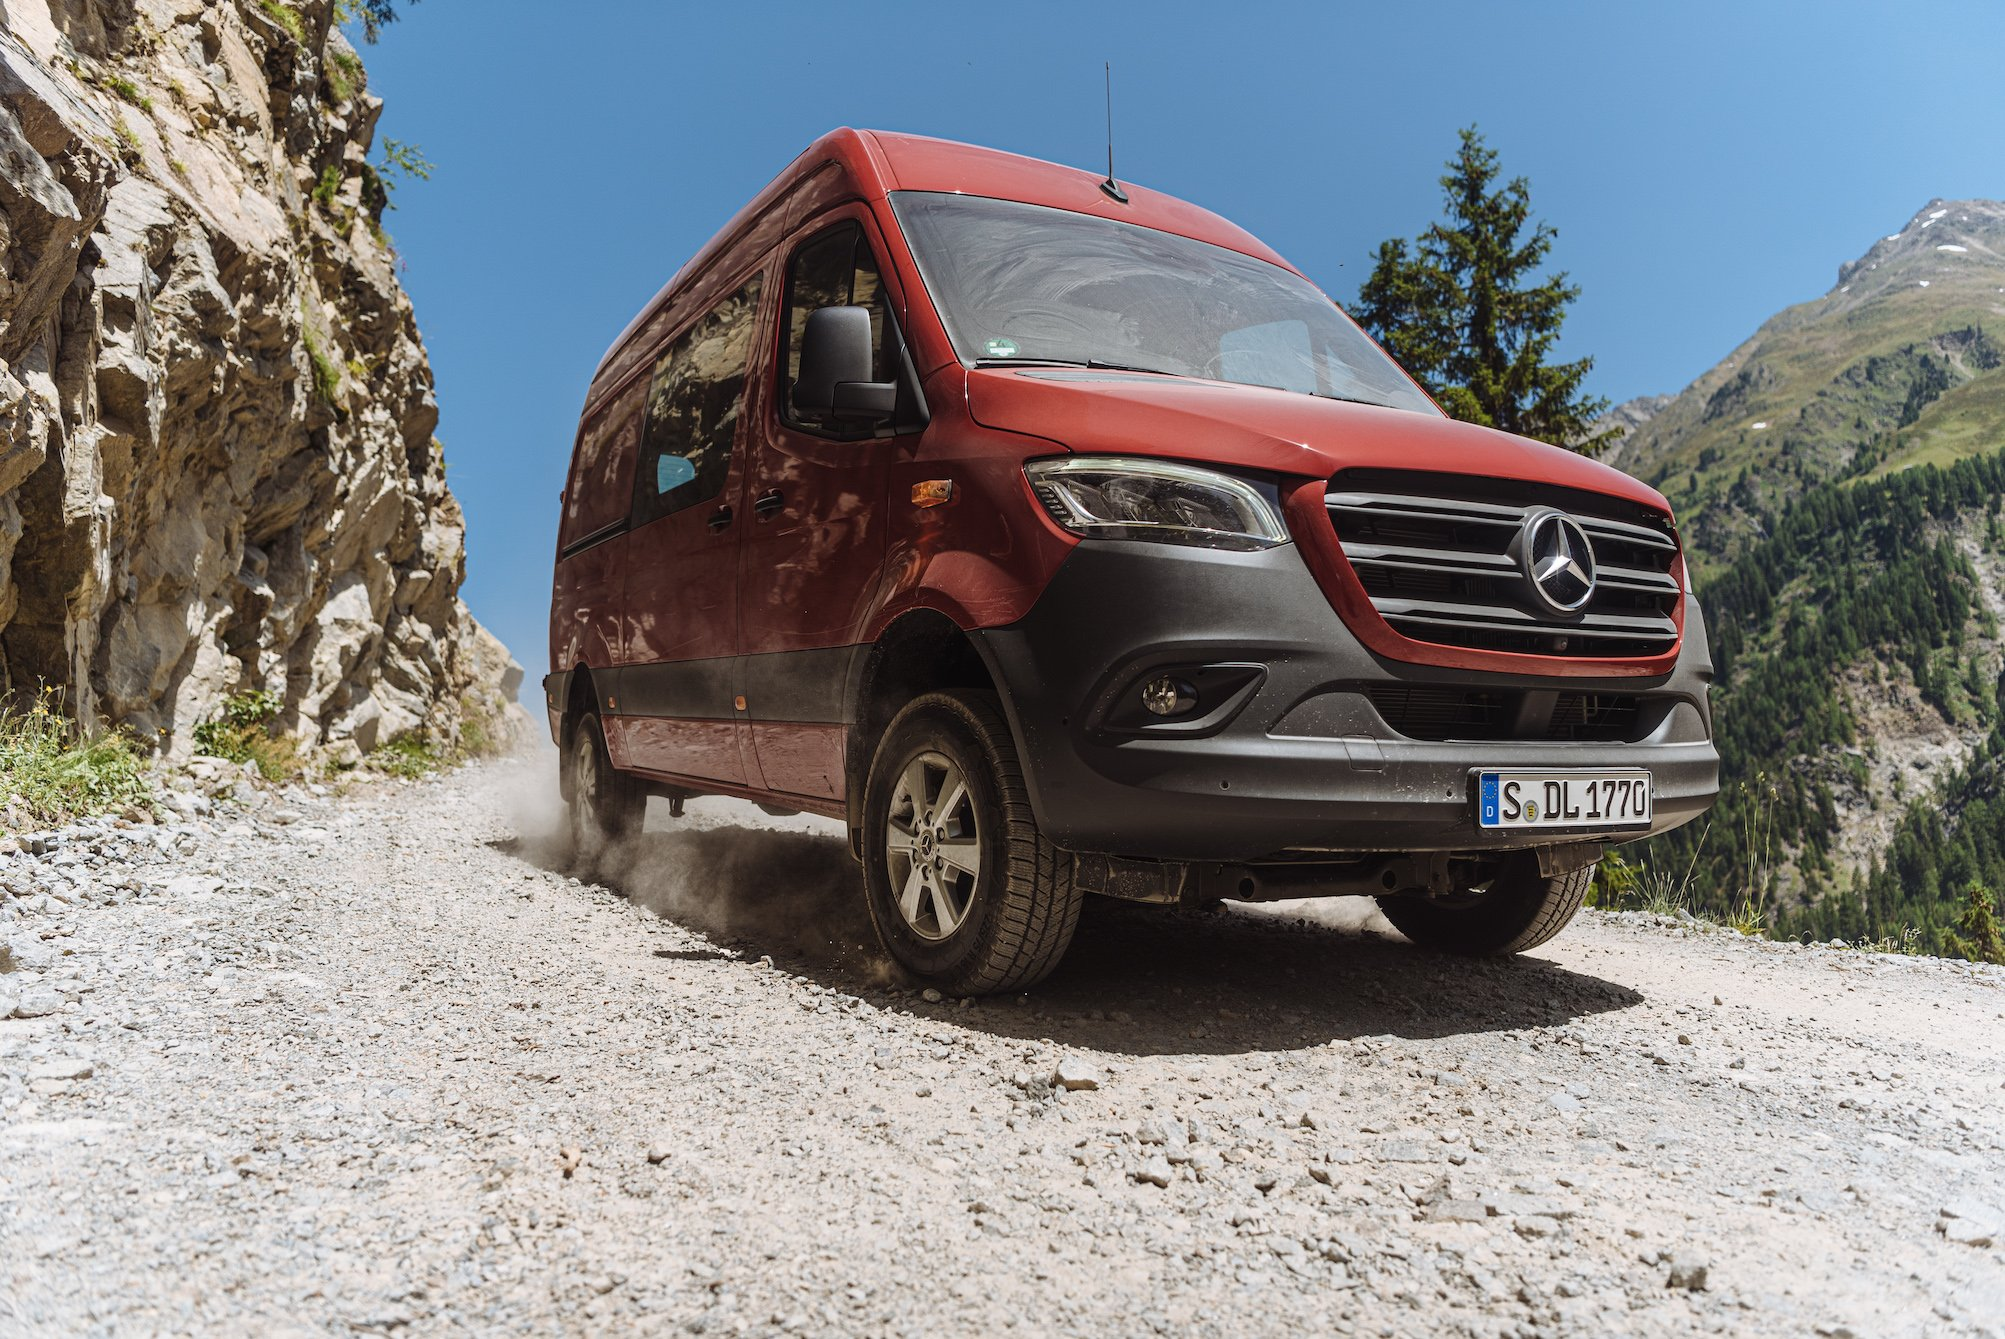 2019 / The new Sprinter 4x4 / Image / Summer